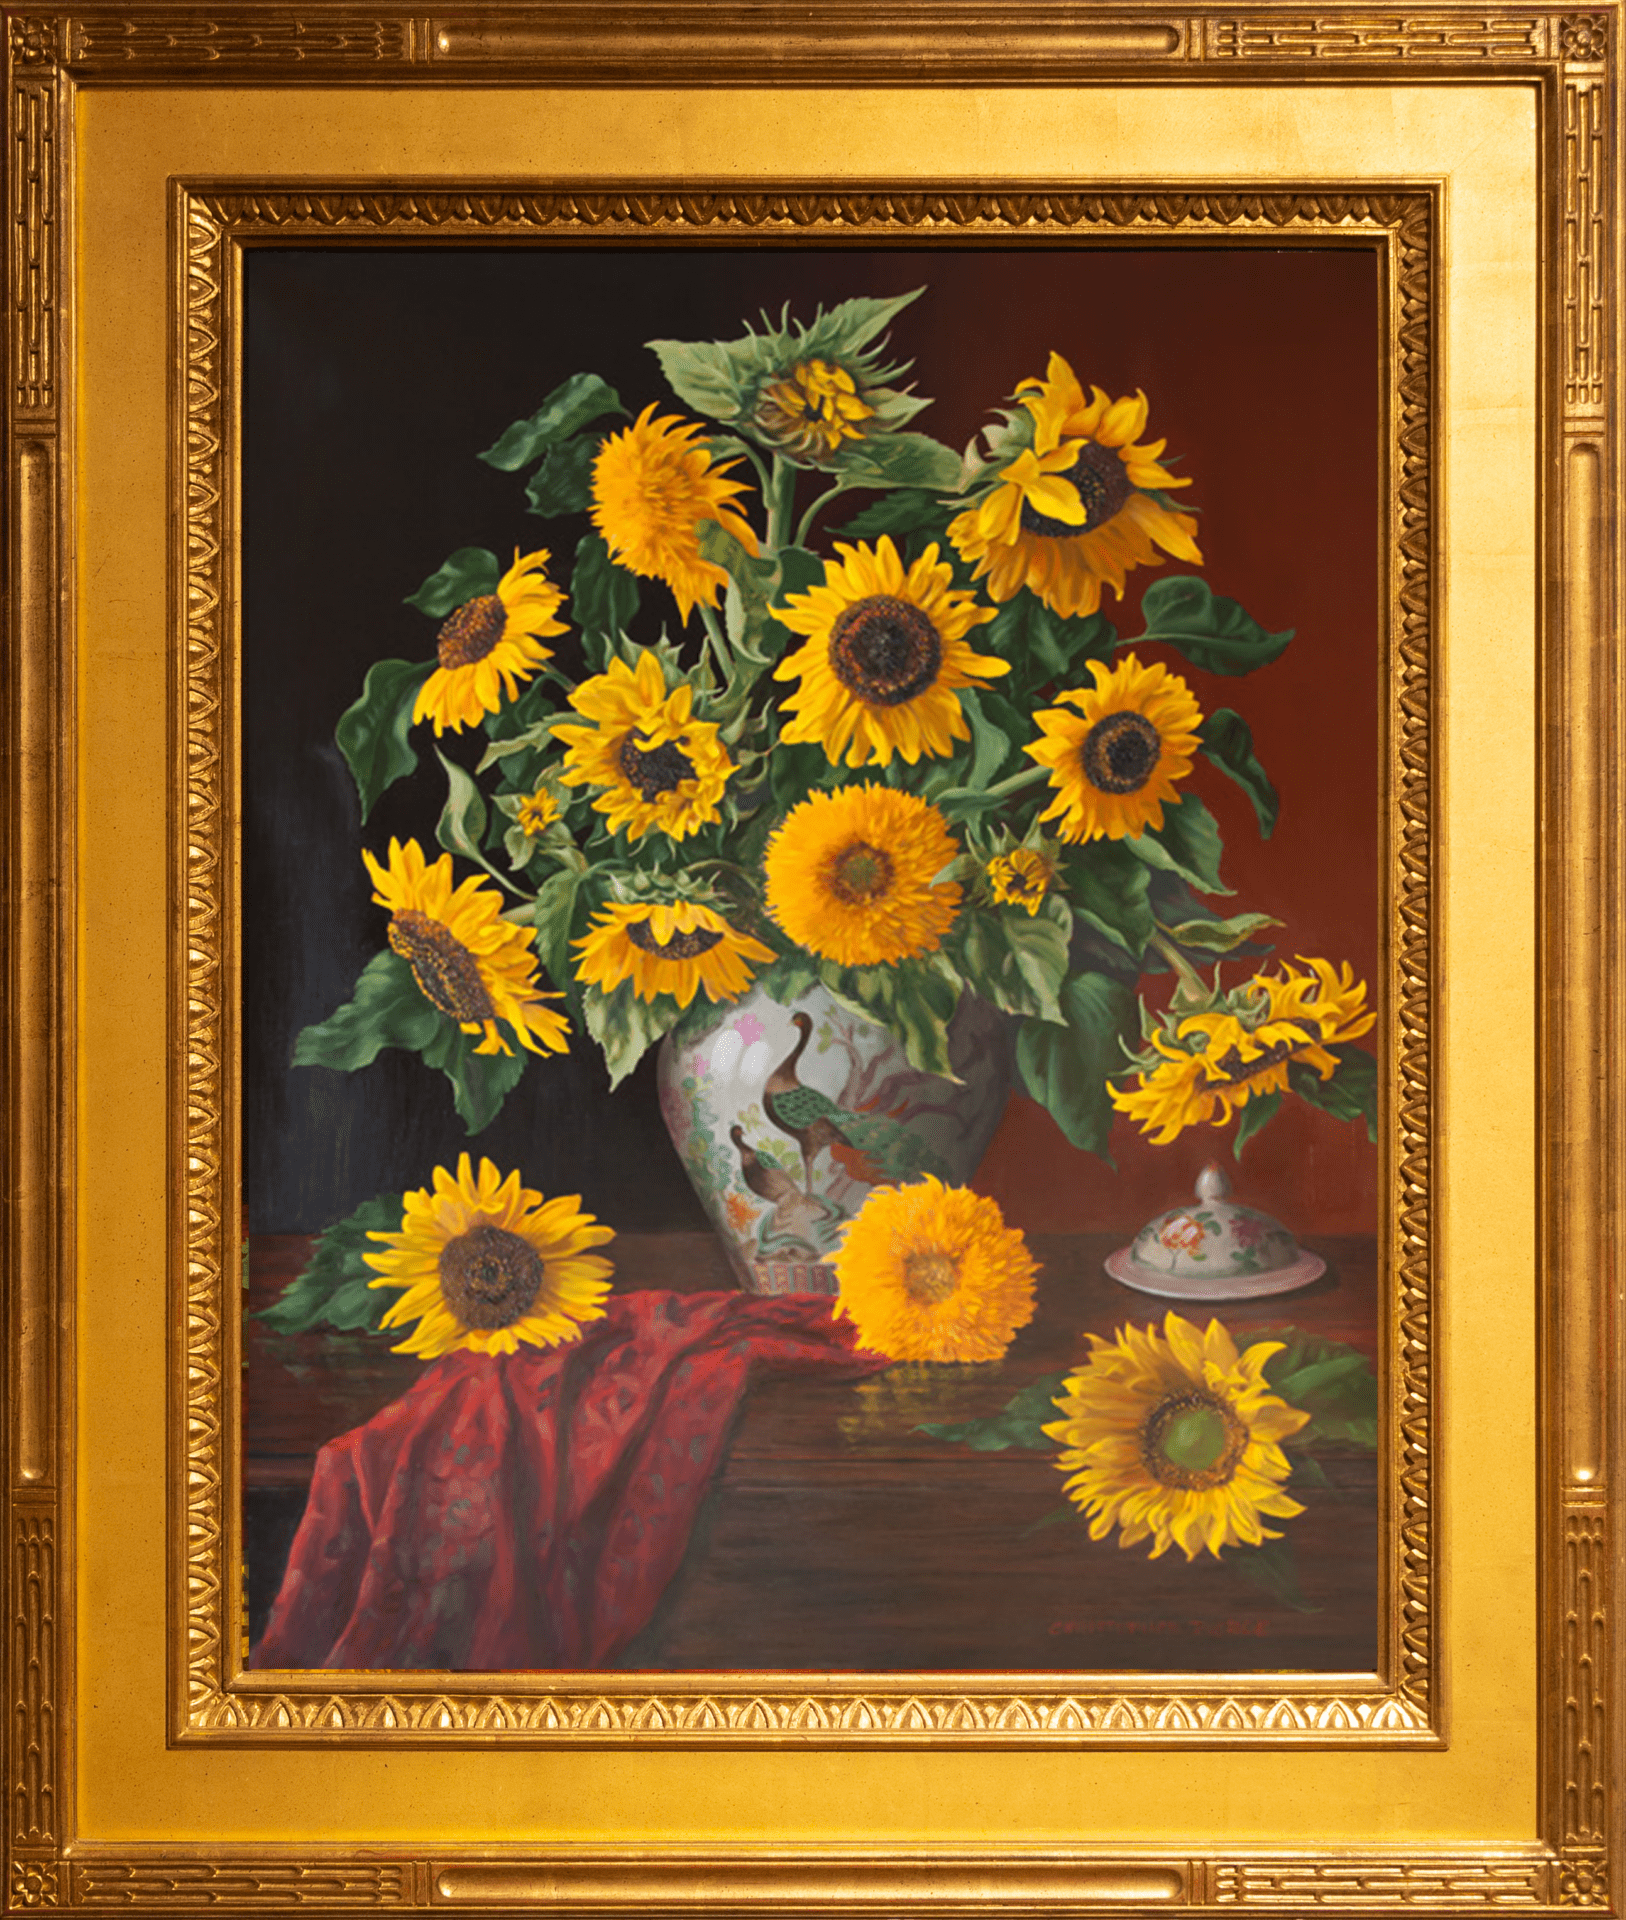 Sunflowers | Christopher Pierce | Oil | 50 x 40""